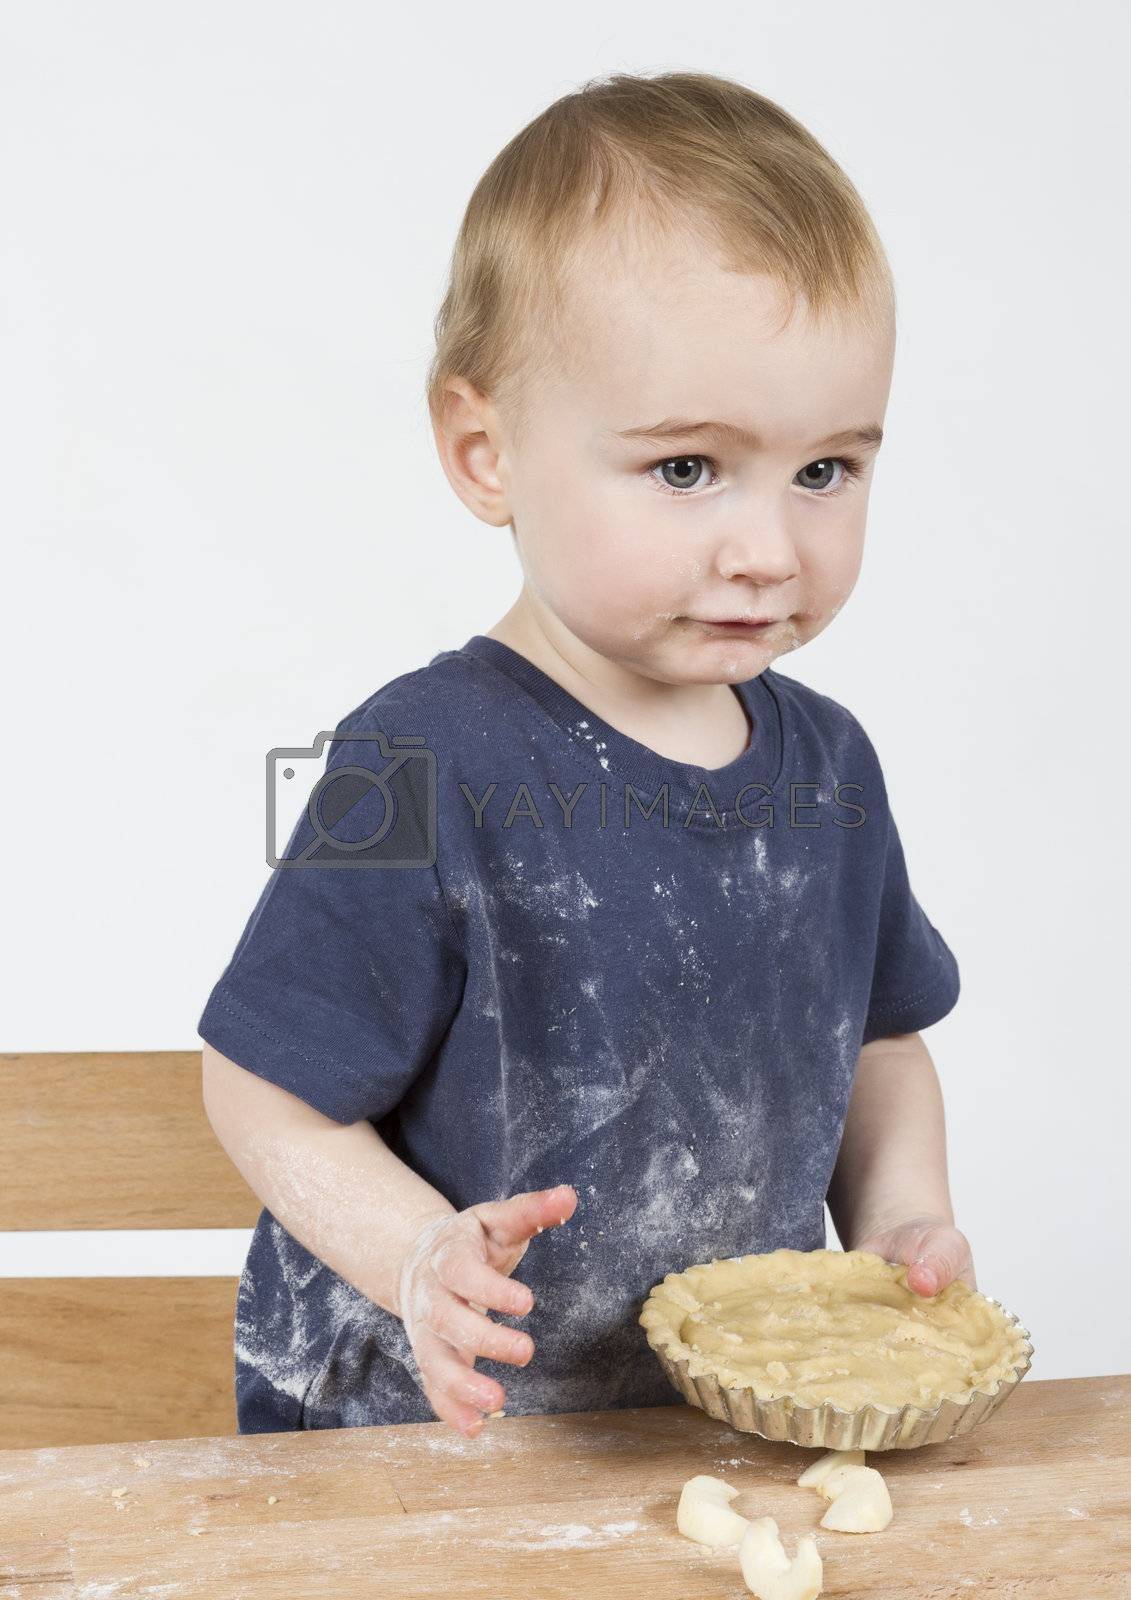 Royalty free image of child making cookies by gewoldi